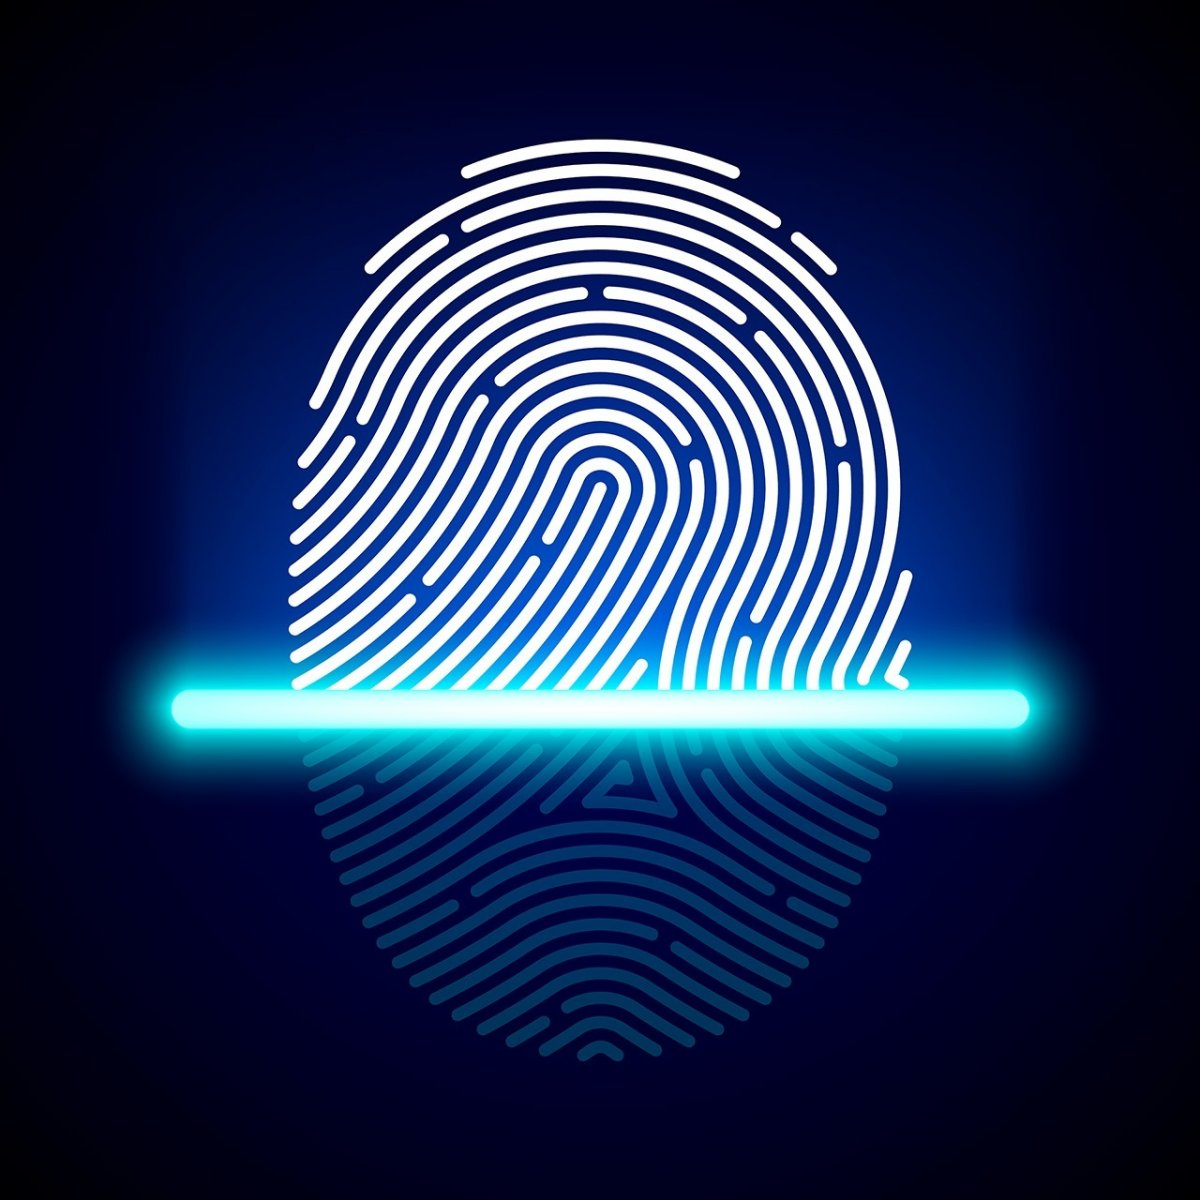 fingerprints-FB-1.jpg